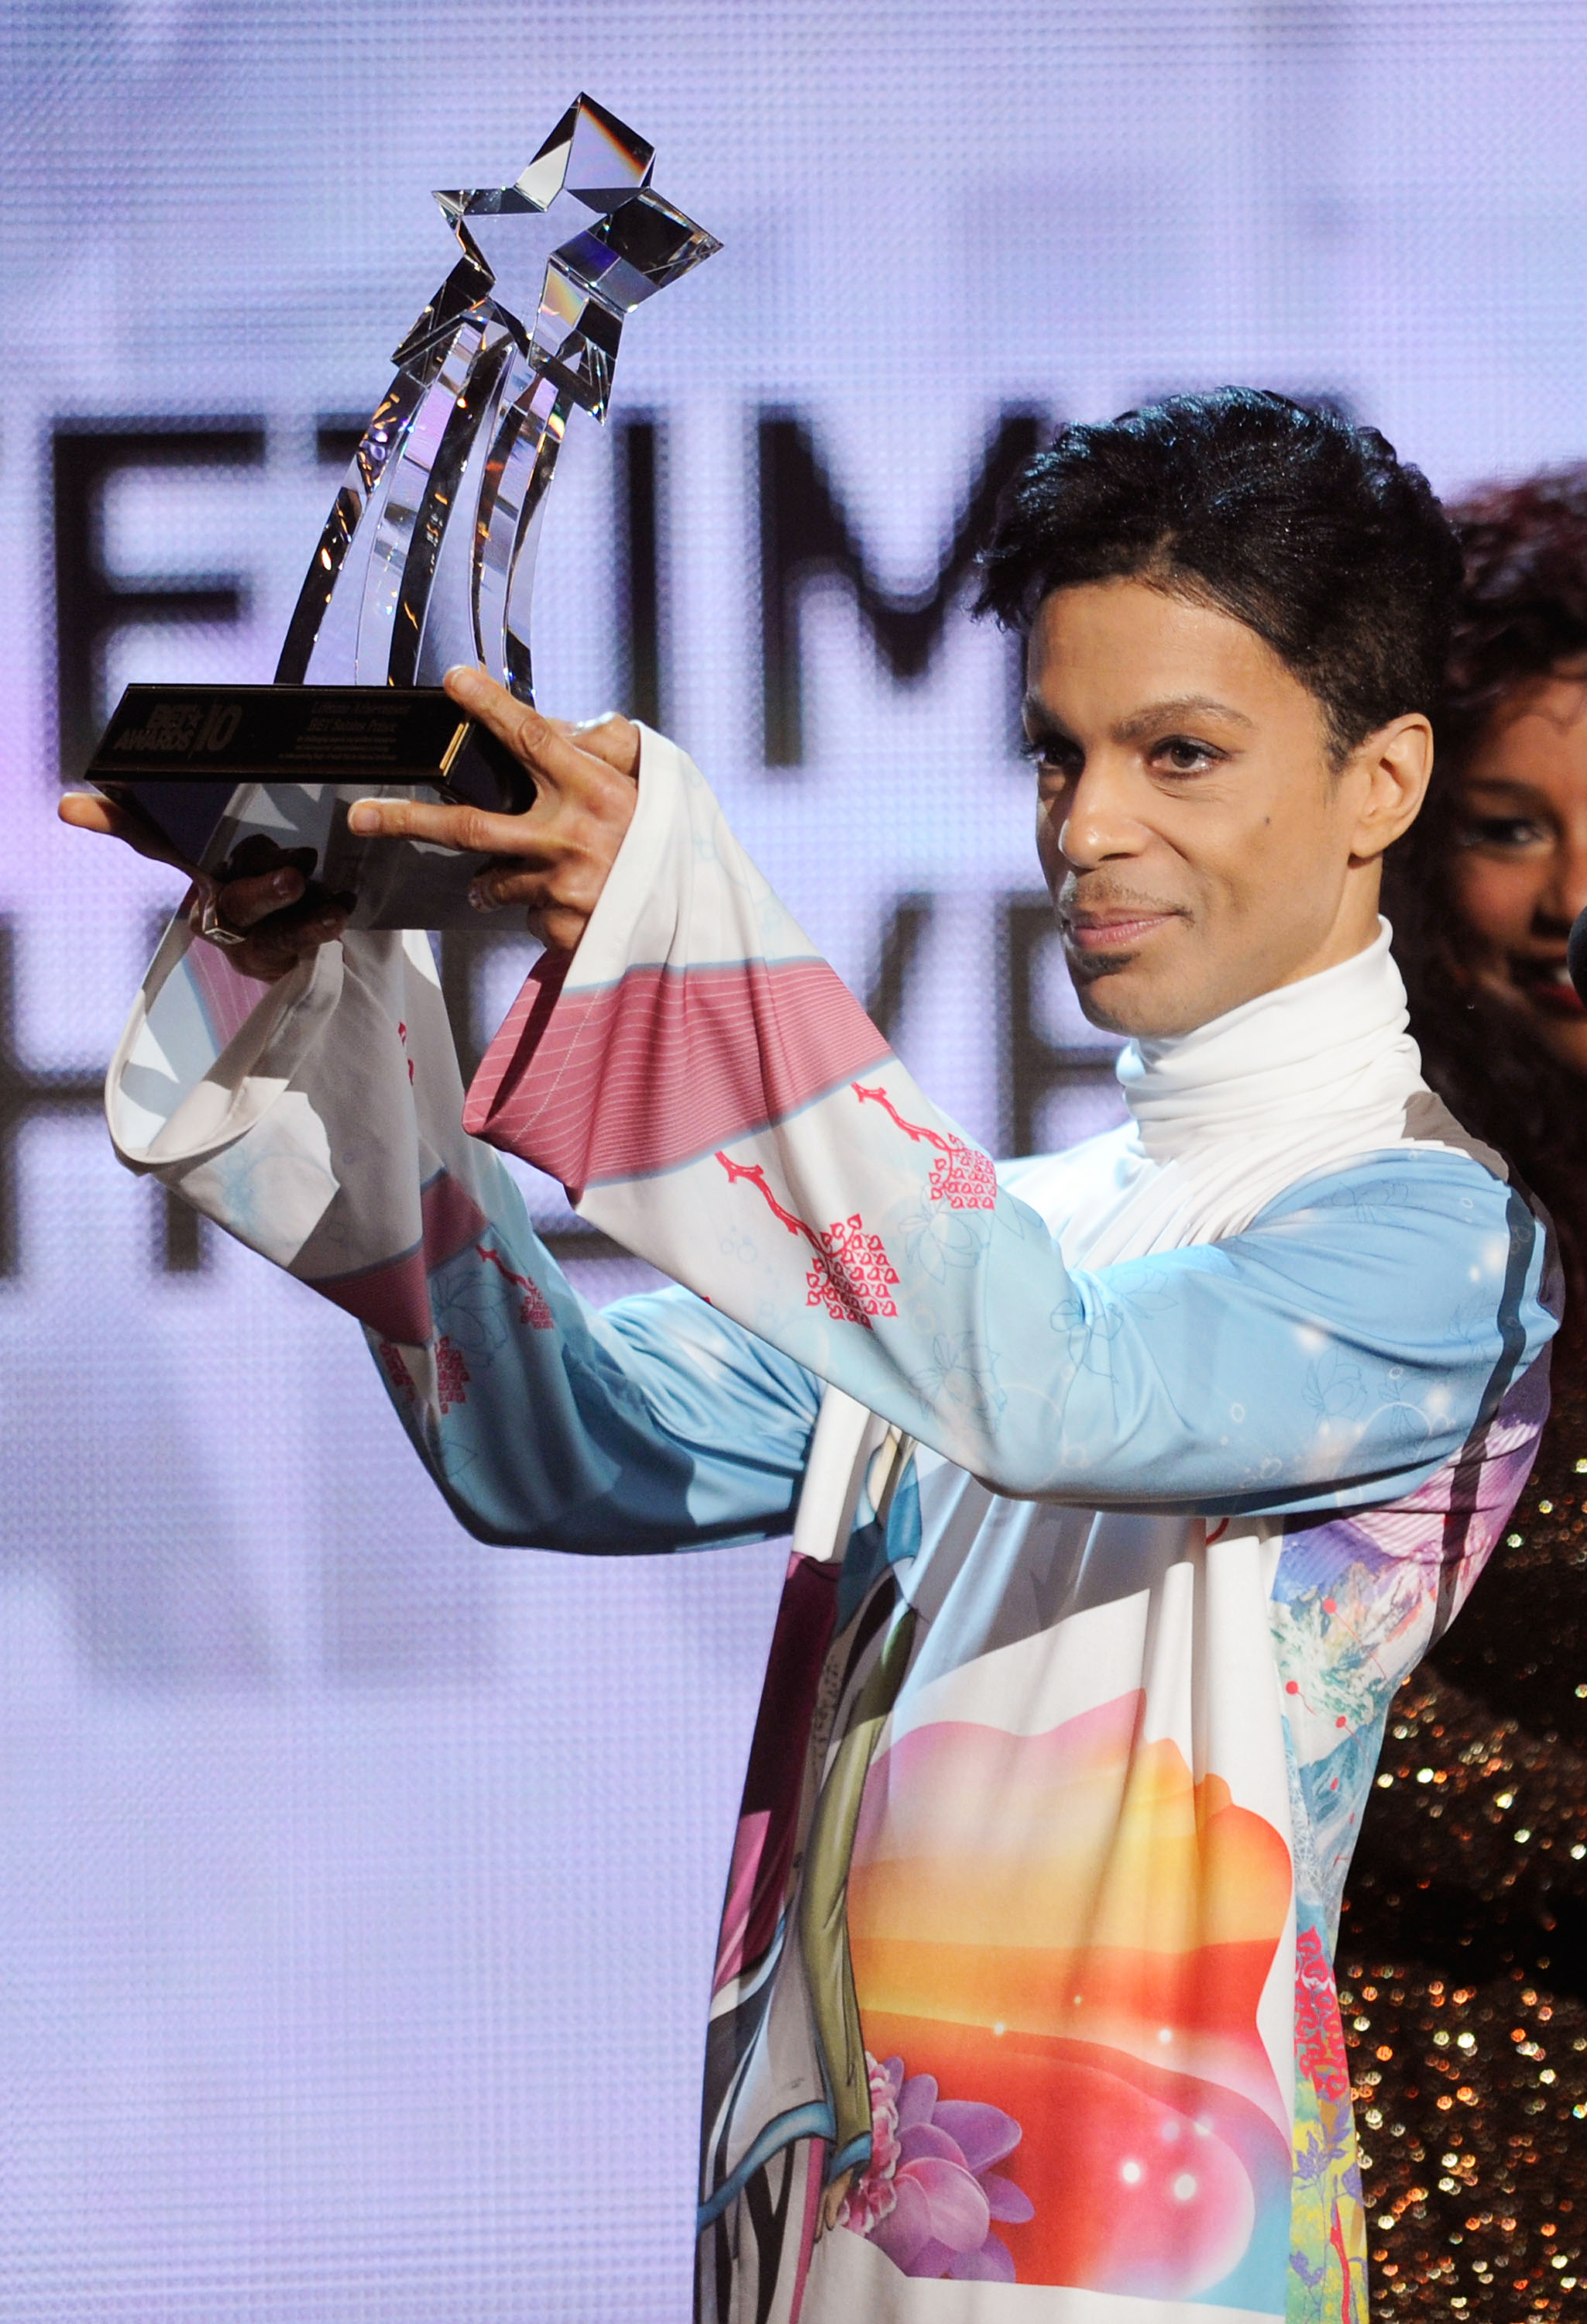 Prince on bet super bowl 2021 odds betting